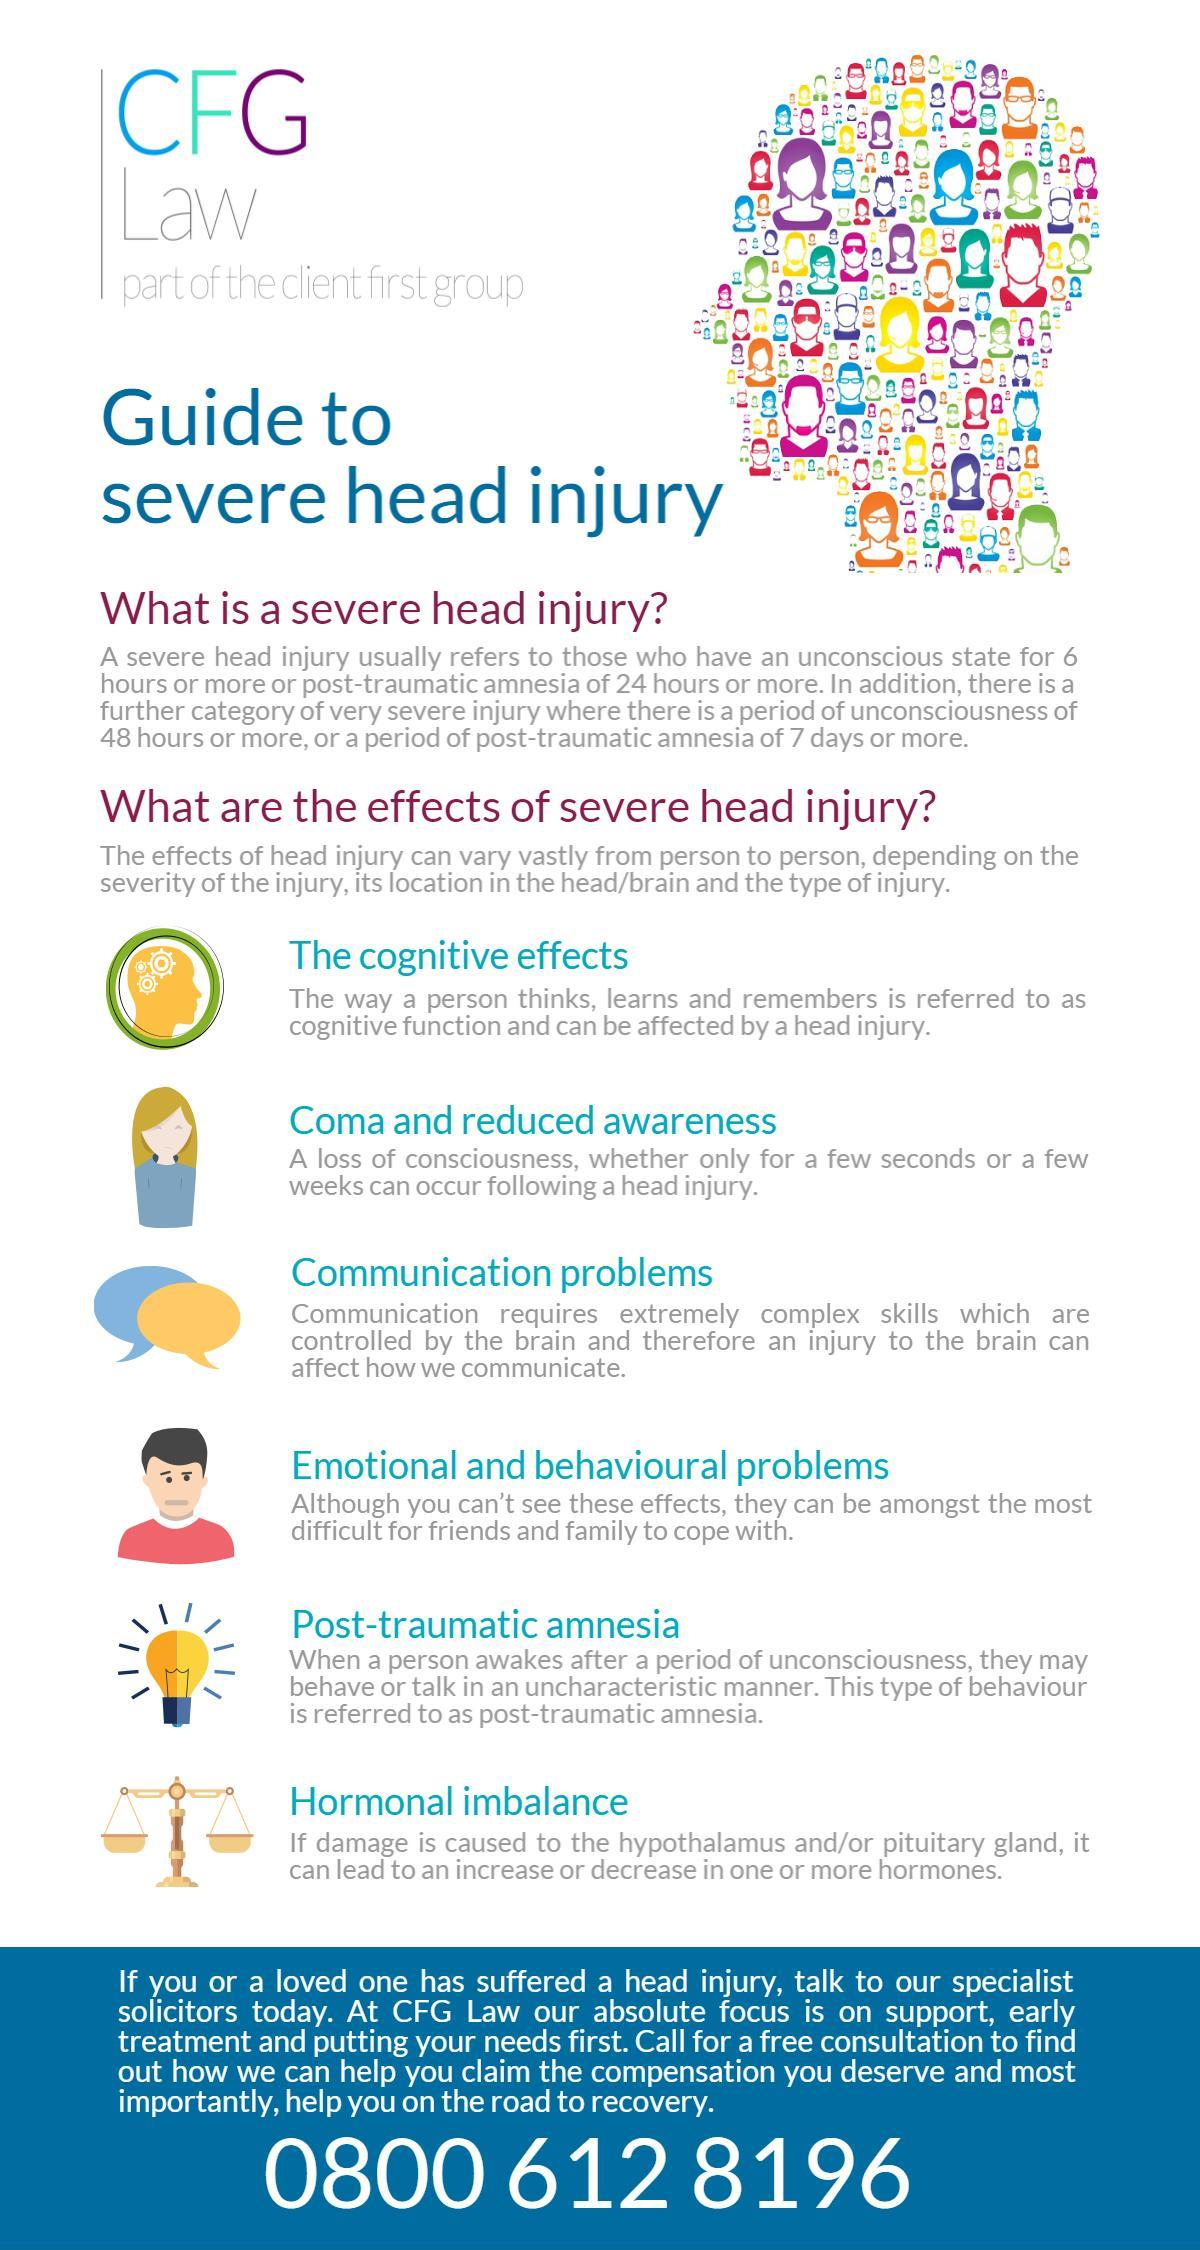 Infographic: A guide to severe head injury